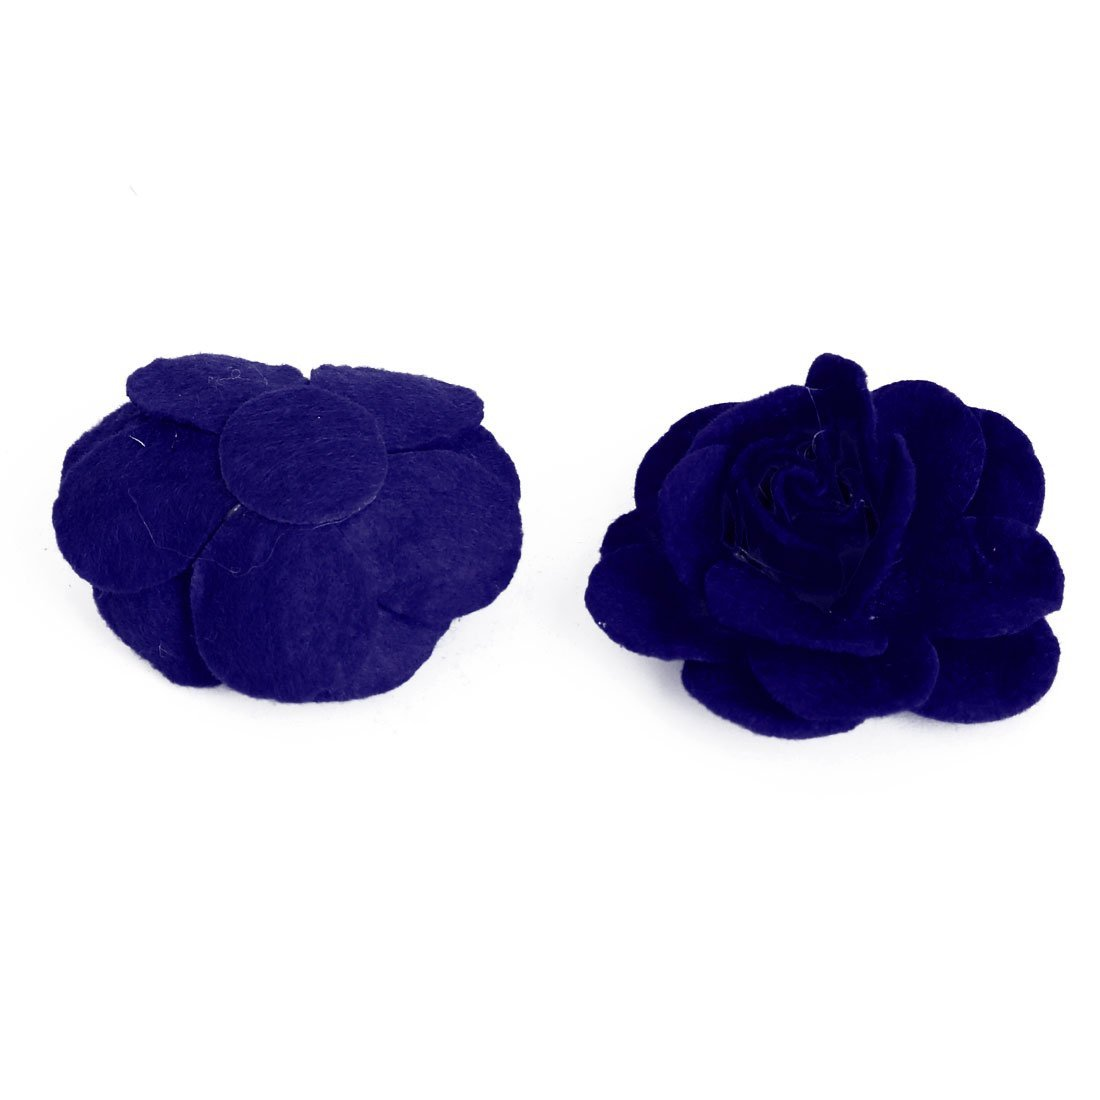 Amazon.com: eDealMax Traje de Novia Accesorios decorativa de la Flor de Rose Heads 5 PCS Azul Oscuro: Home & Kitchen